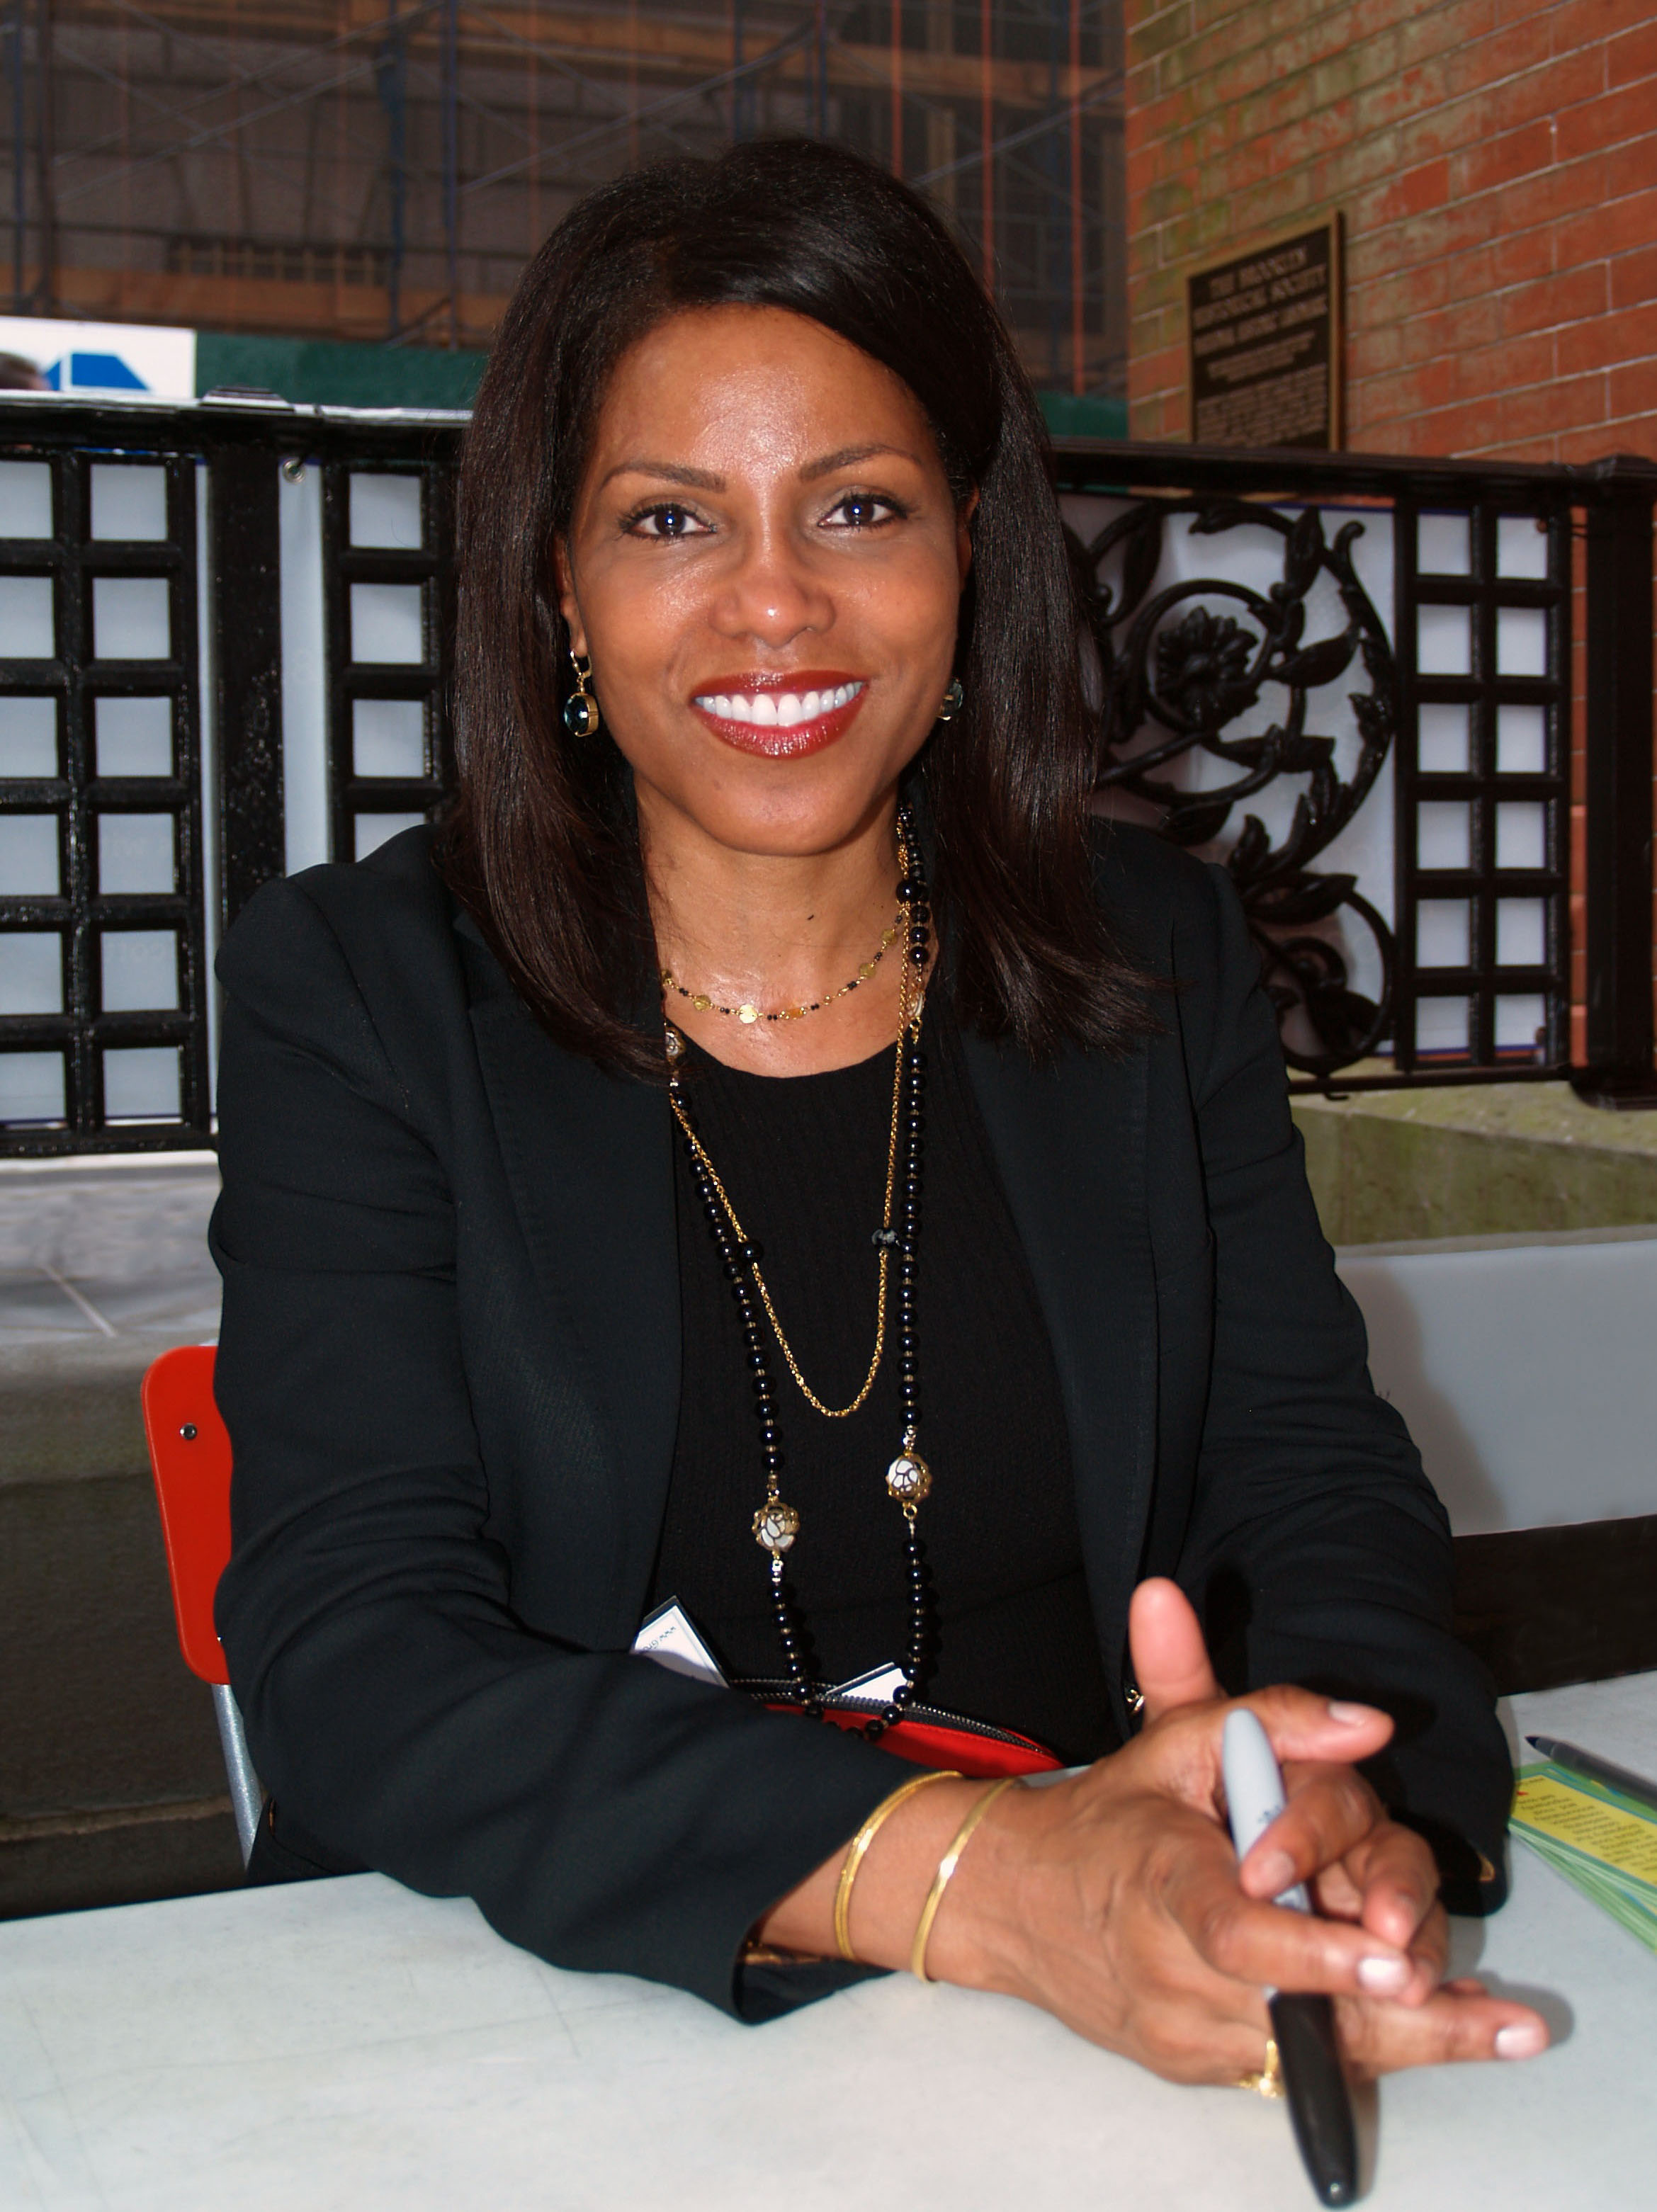 Shabazz at the 2014<br />[[Brooklyn Book Festival]]